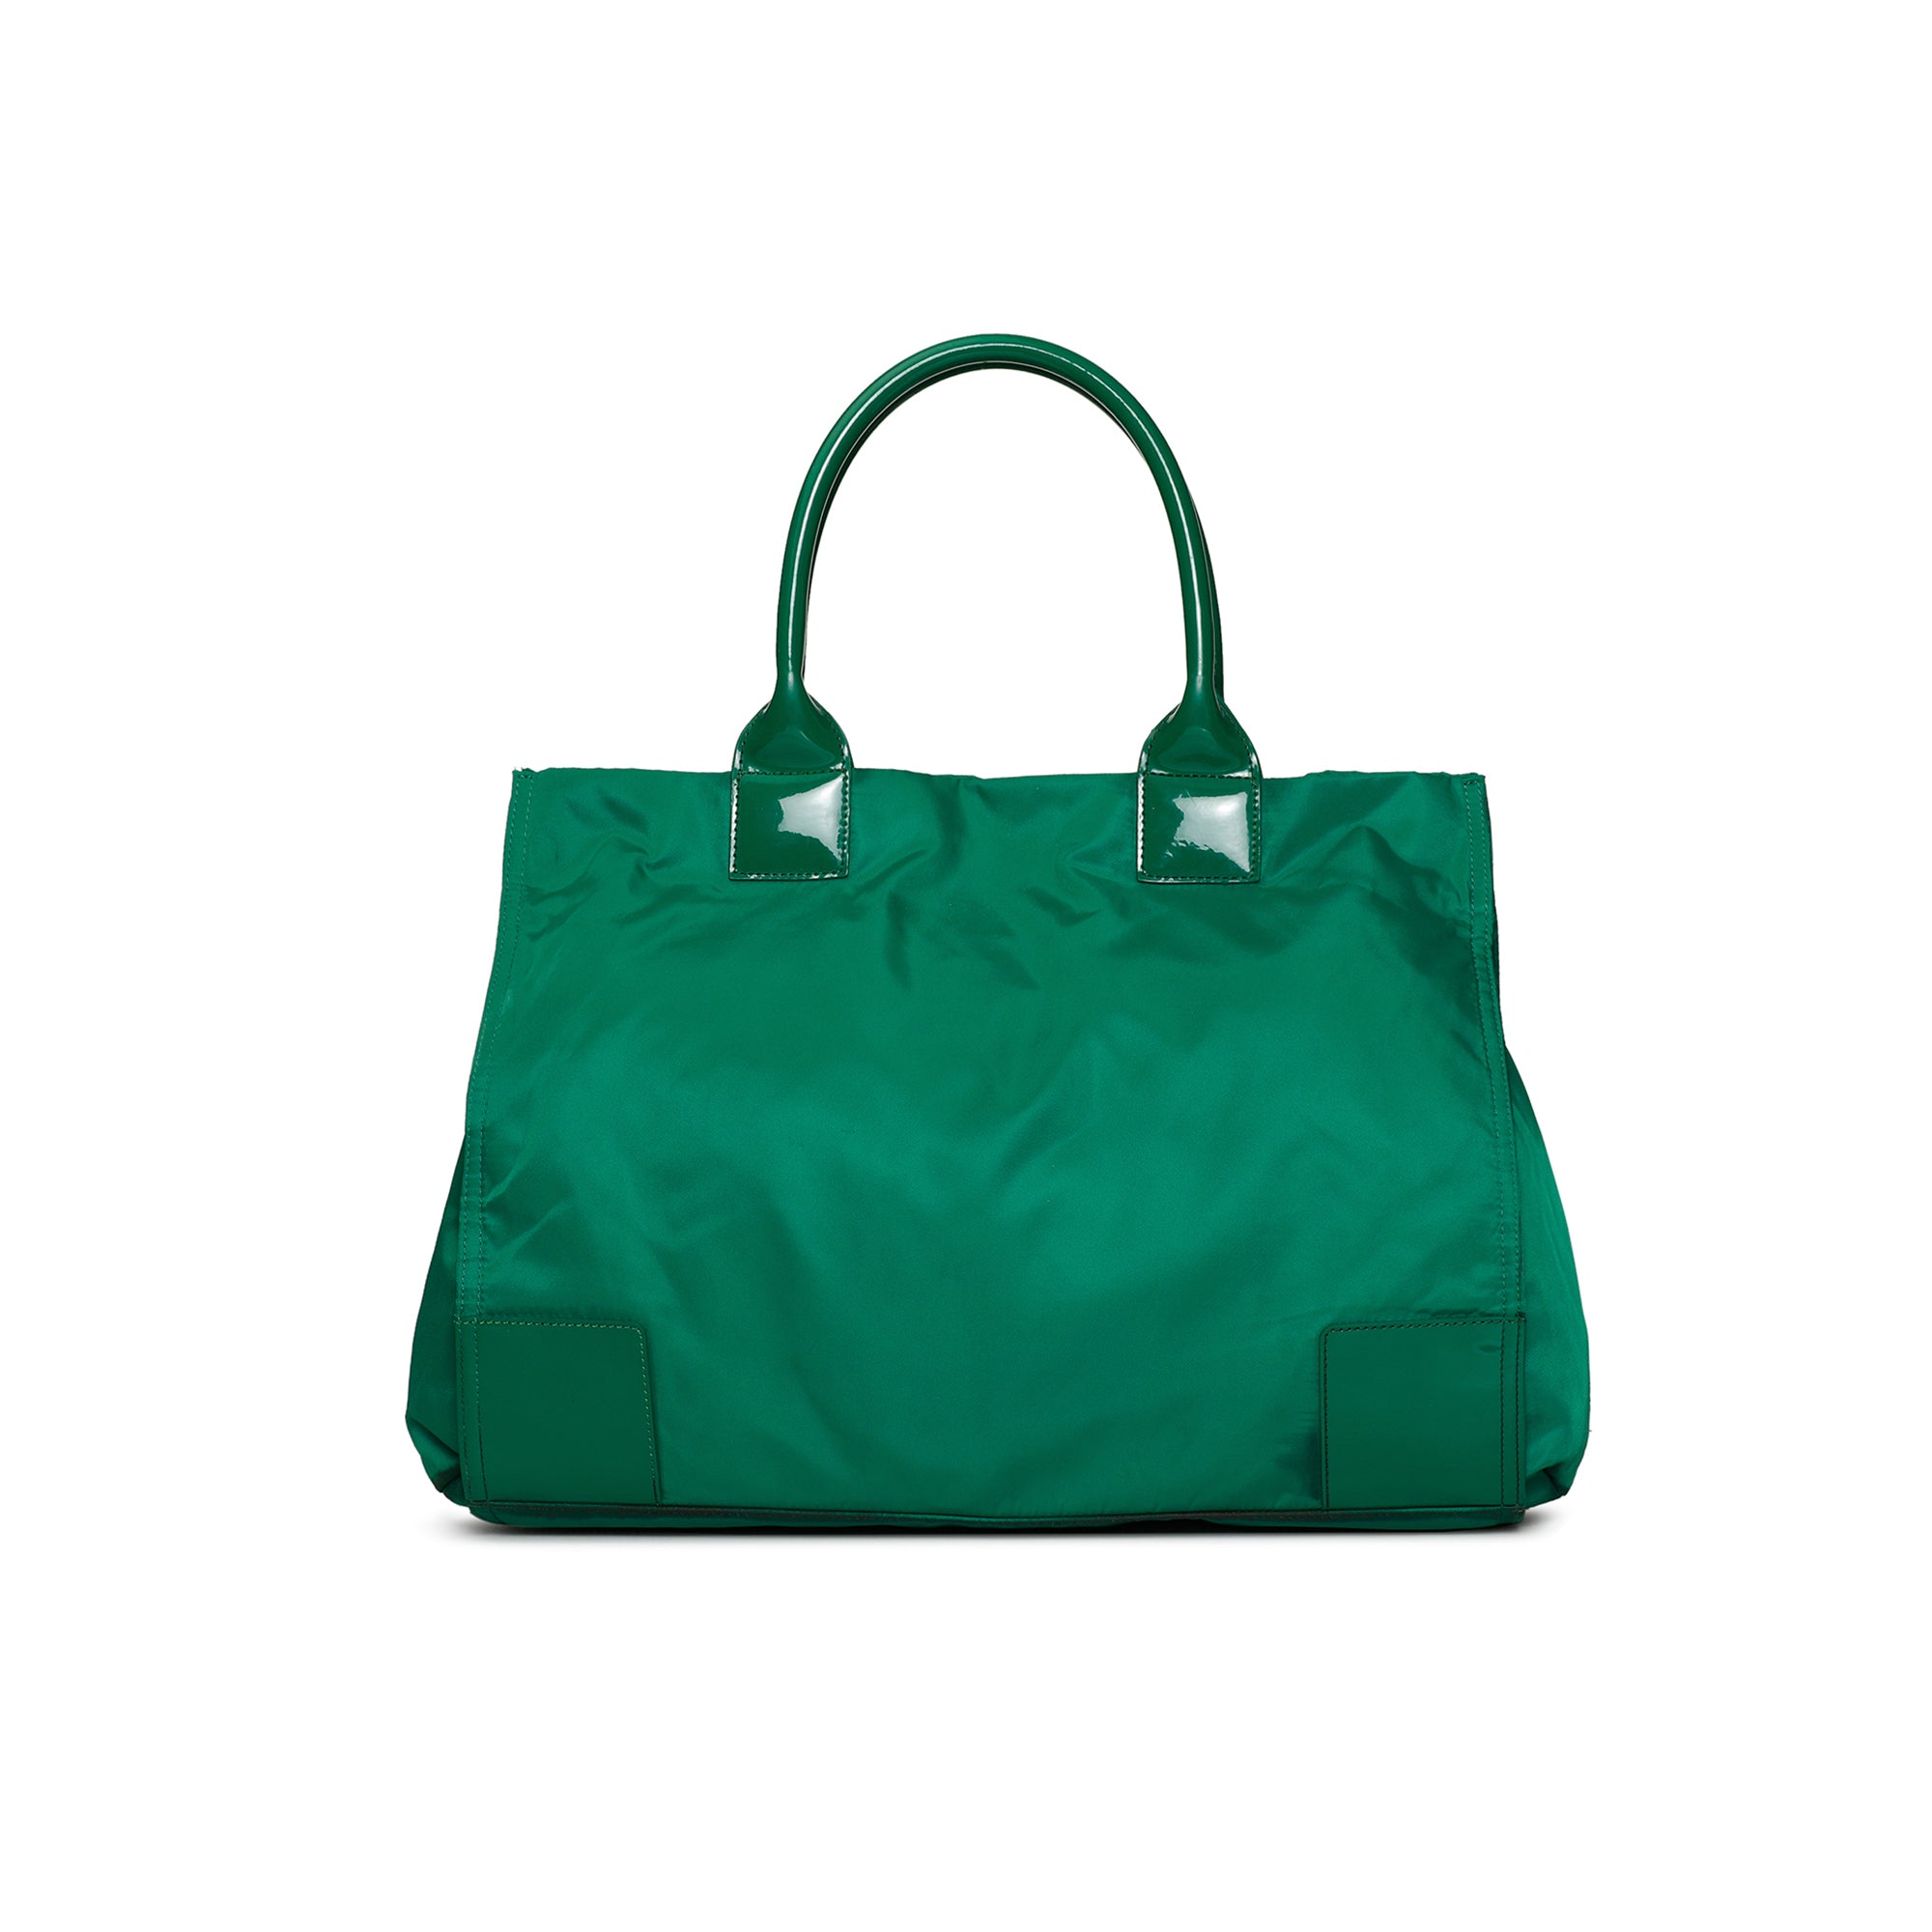 Tory Burch Ella Green Nylon Tote